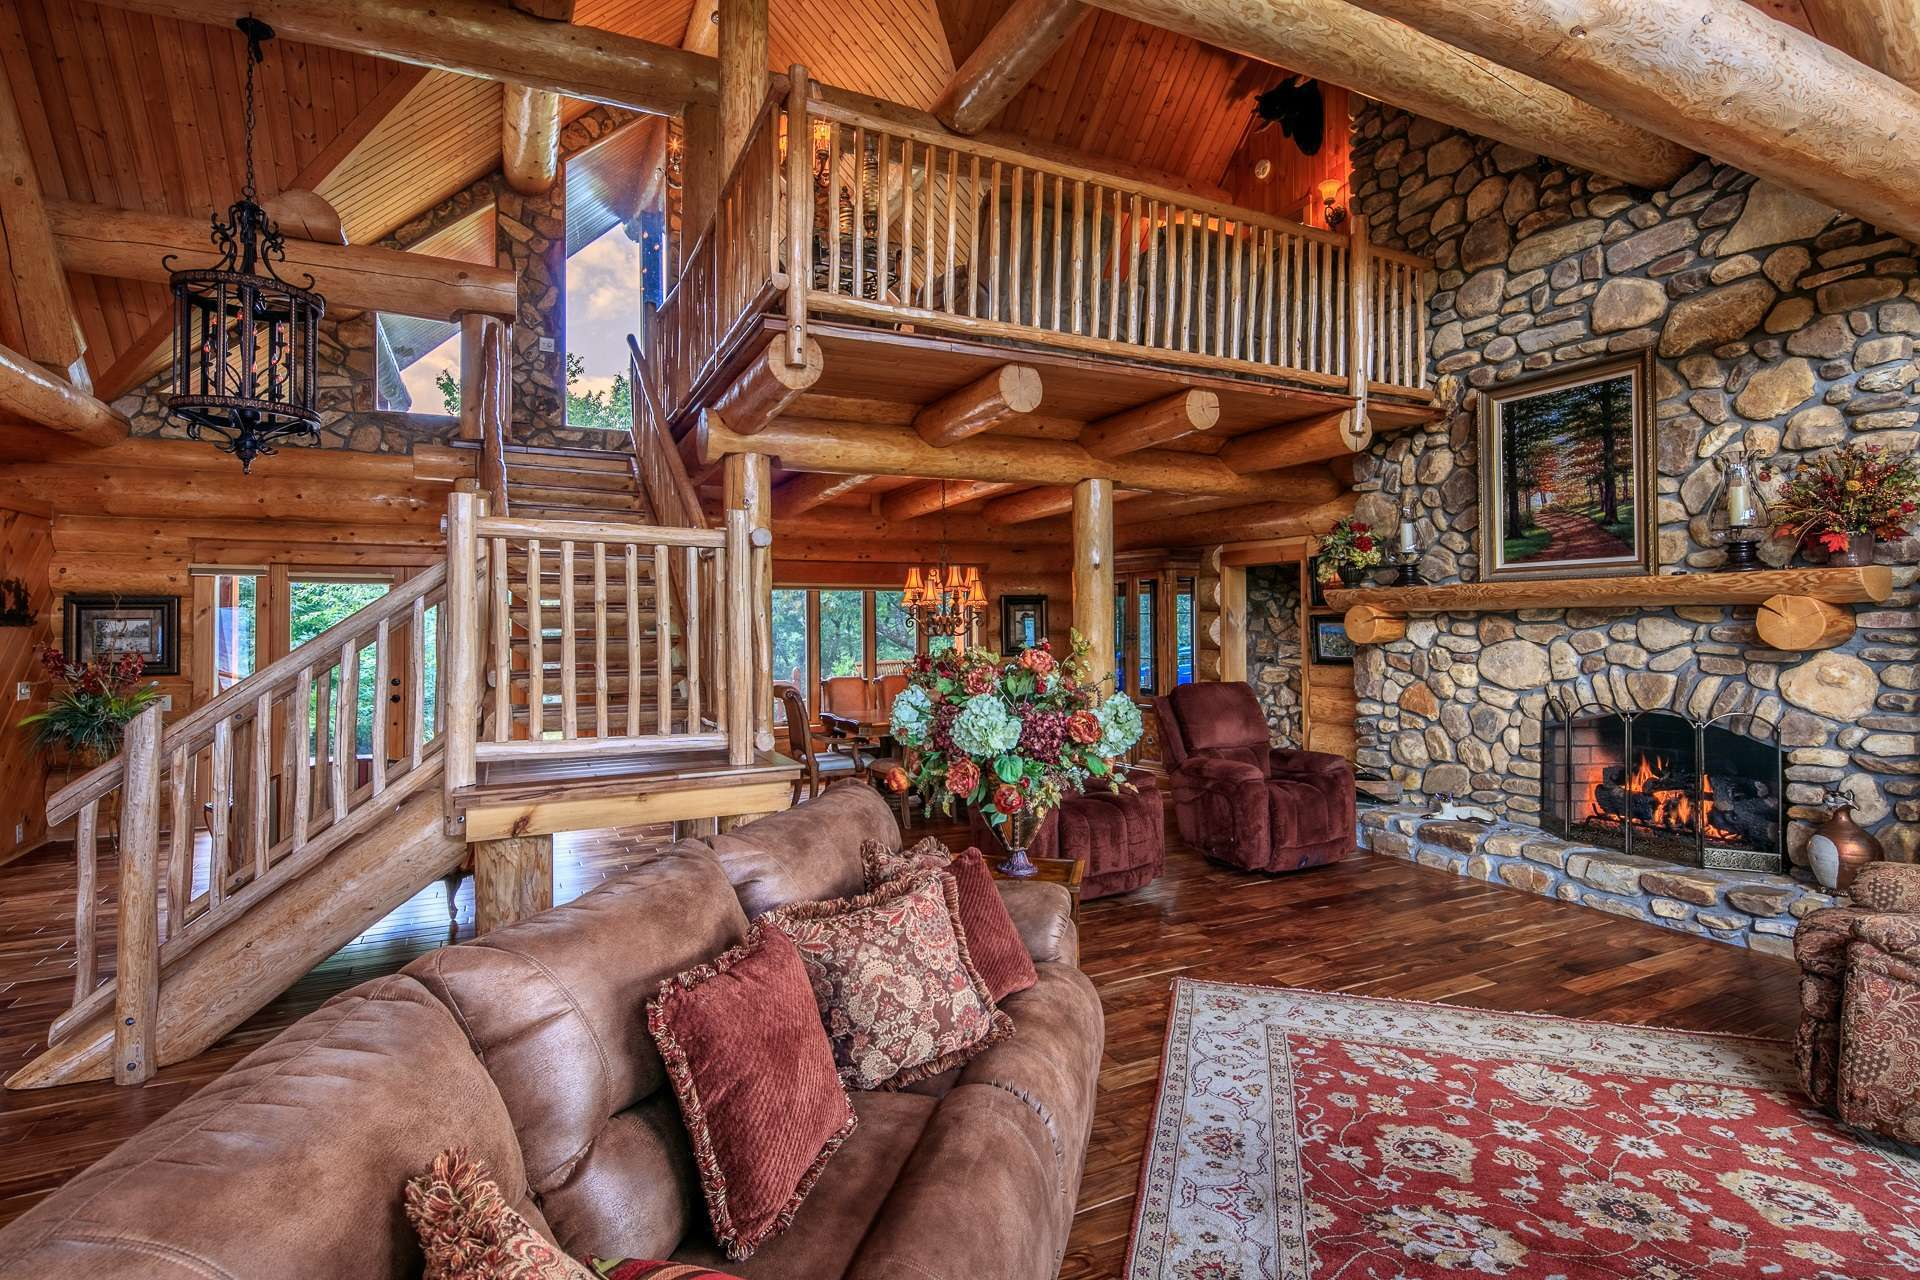 The captivating vaulted great room is designed to embrace both rustic and elegant details with the focus on the massive 2-story stone fireplace and the tremendous views.